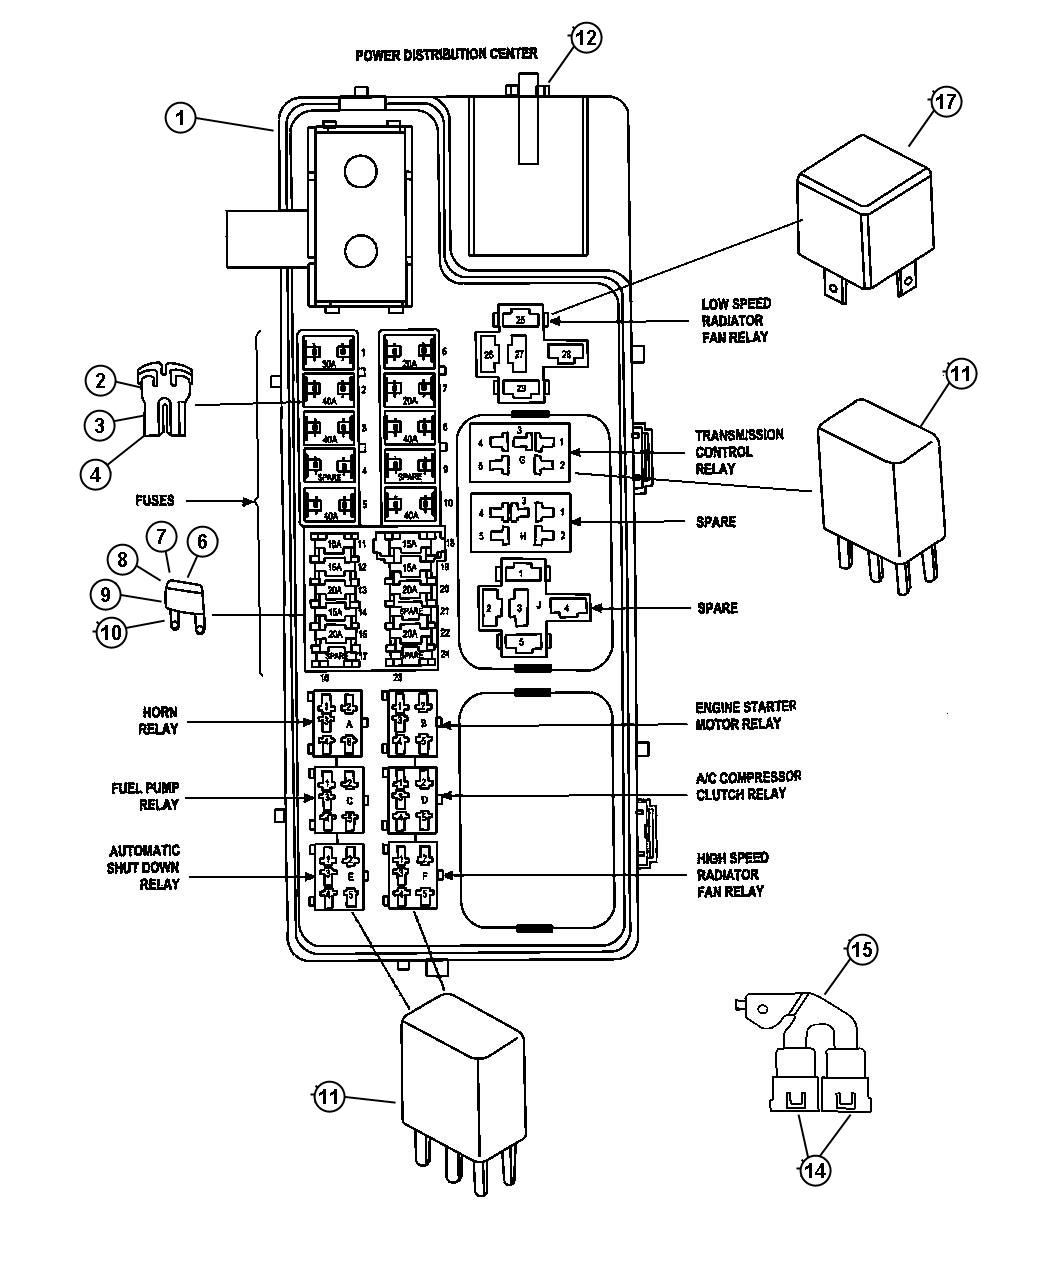 2013 Jeep Compass Module. Totally integrated power